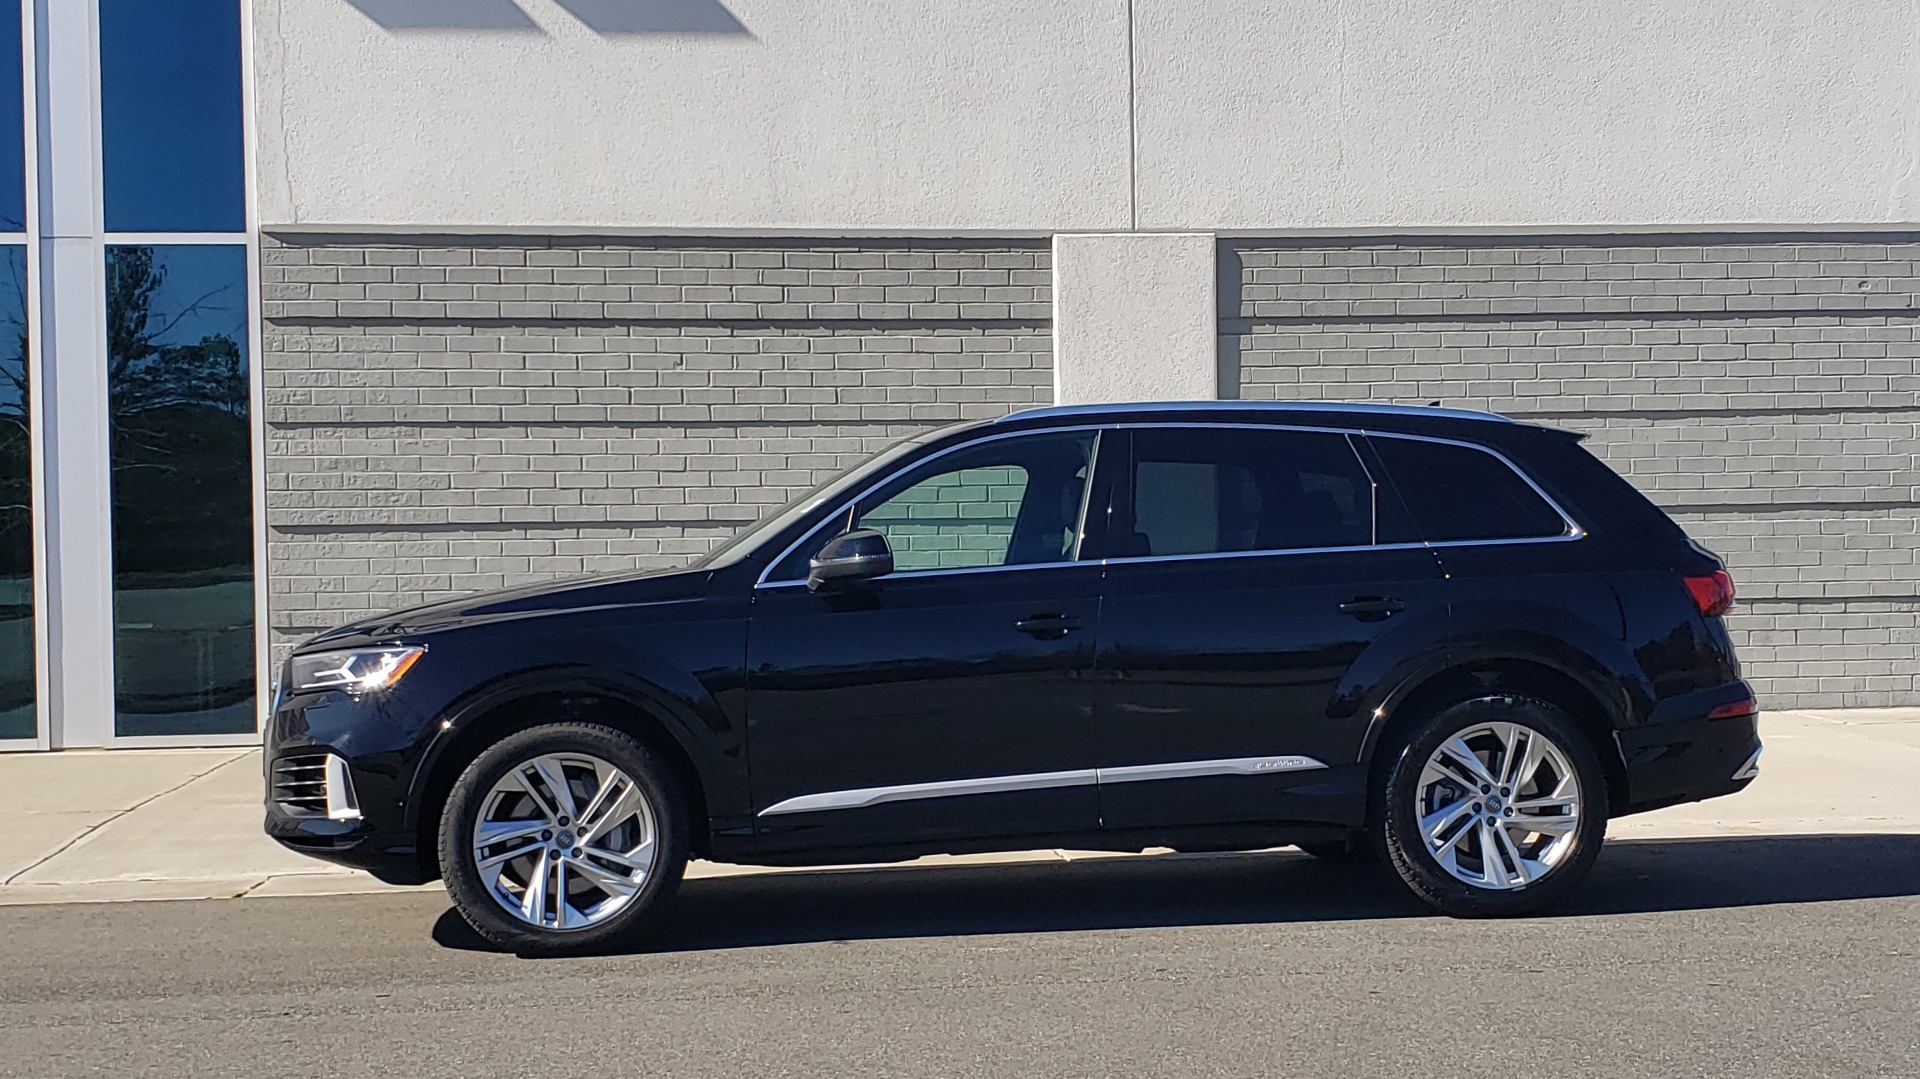 Used 2020 Audi Q7 PREMIUM PLUS / NAV / SUNROOF / 3-ROW / REARVIEW for sale $50,695 at Formula Imports in Charlotte NC 28227 4